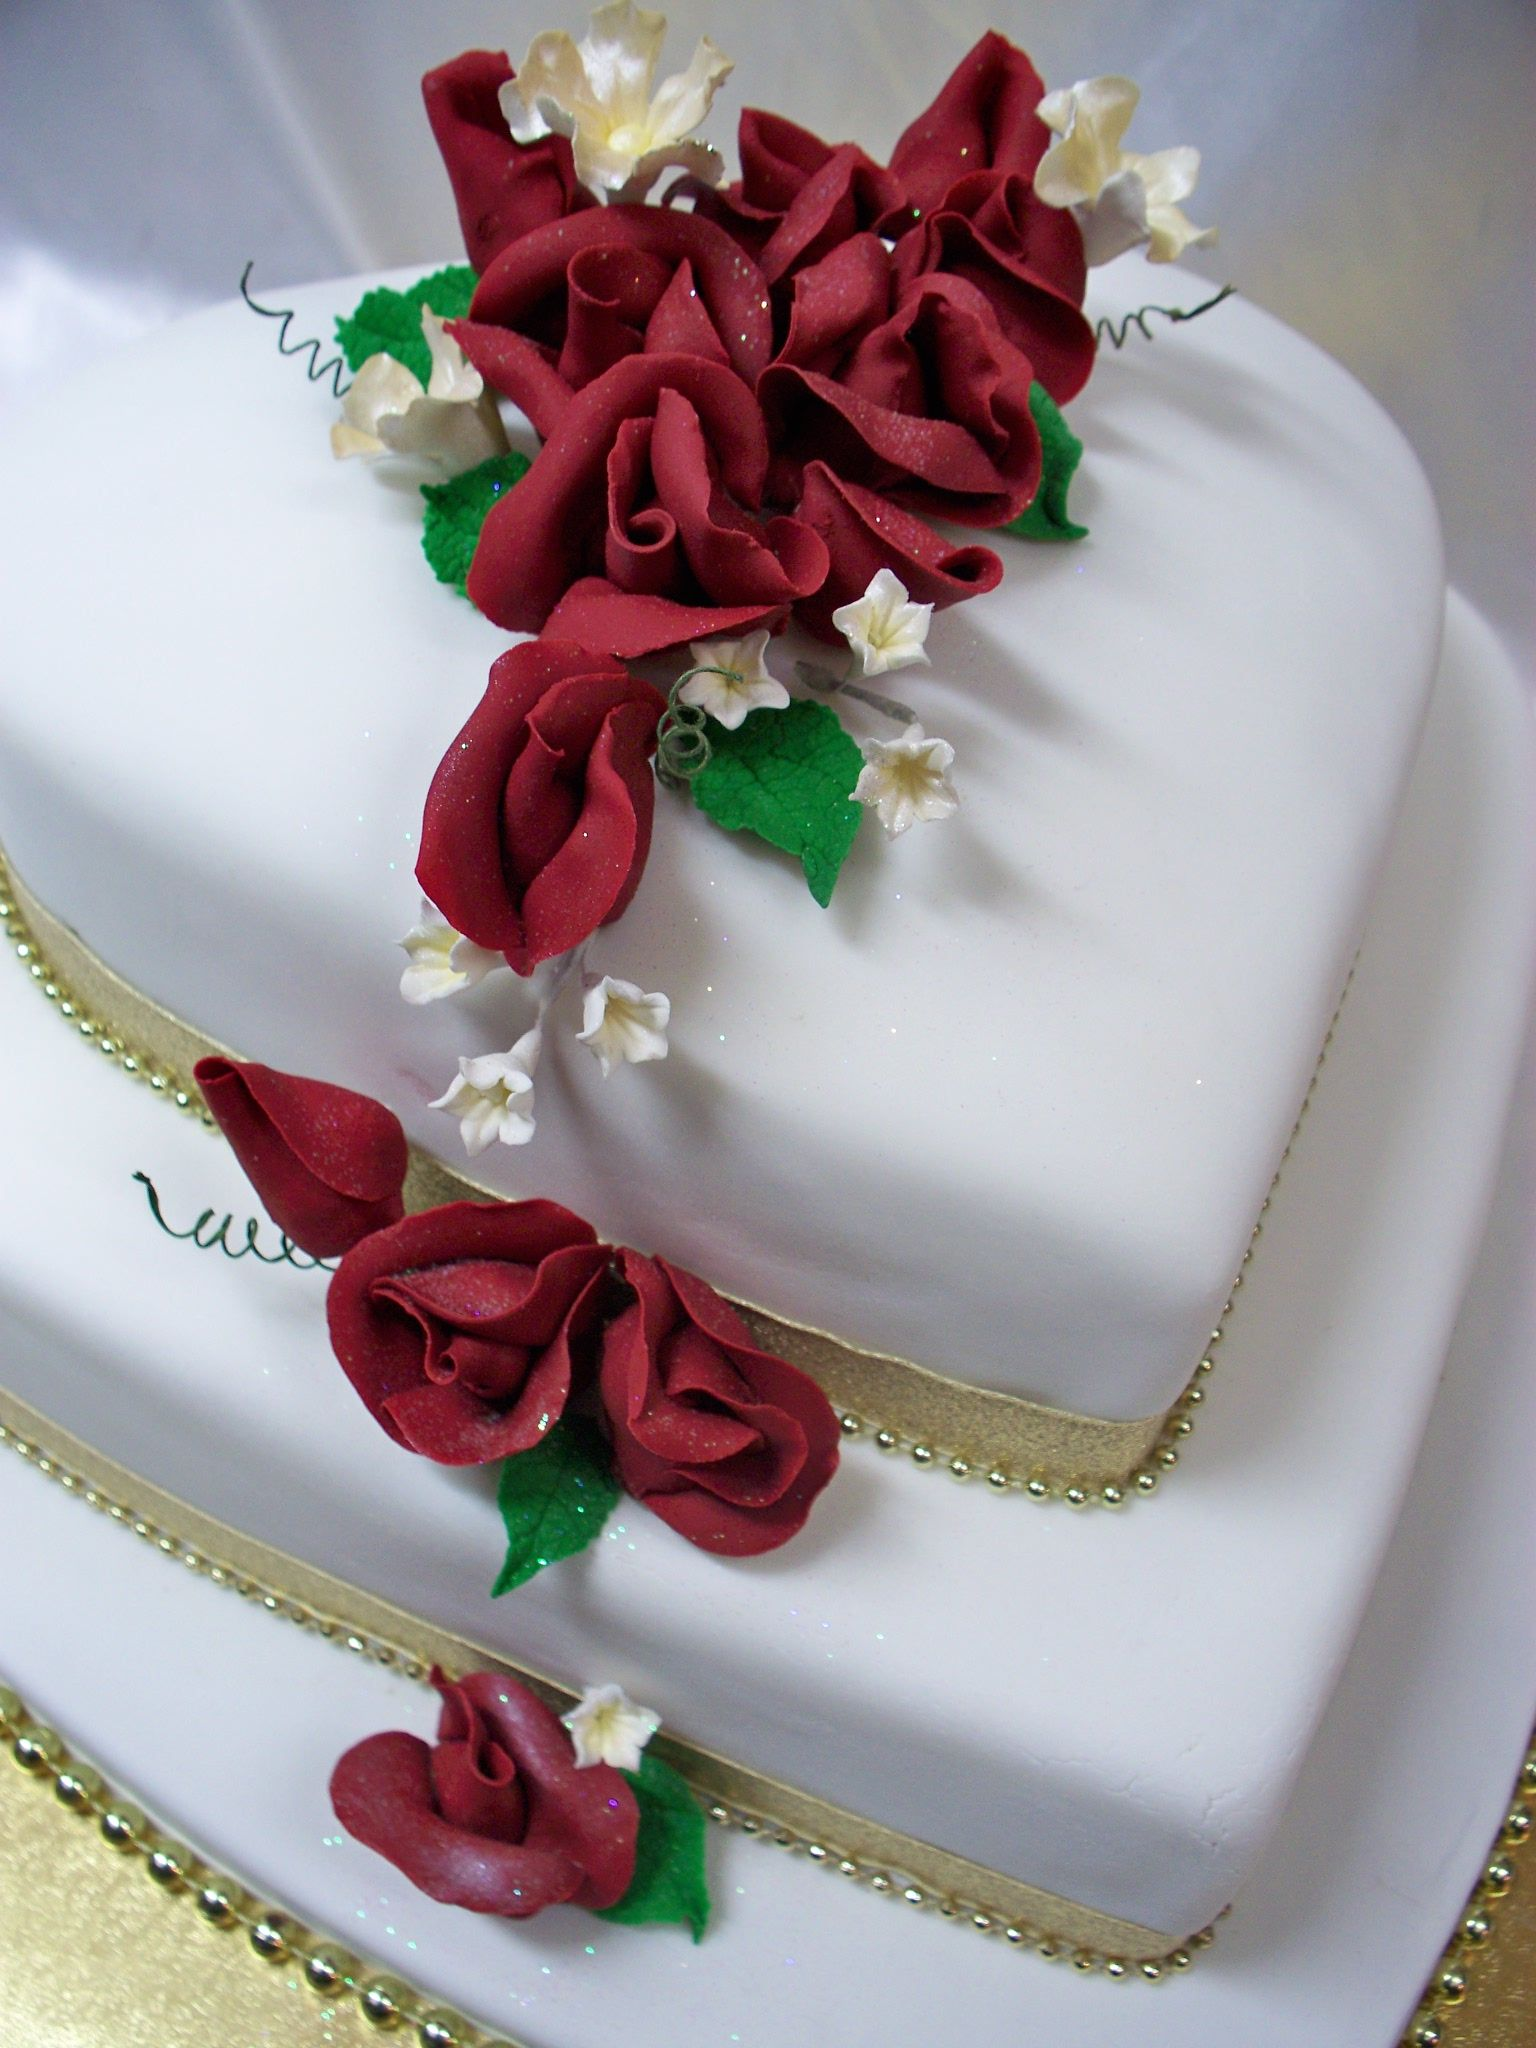 Red roses 2 tier heart shaped wedding cake Best wedding Cakes in ...